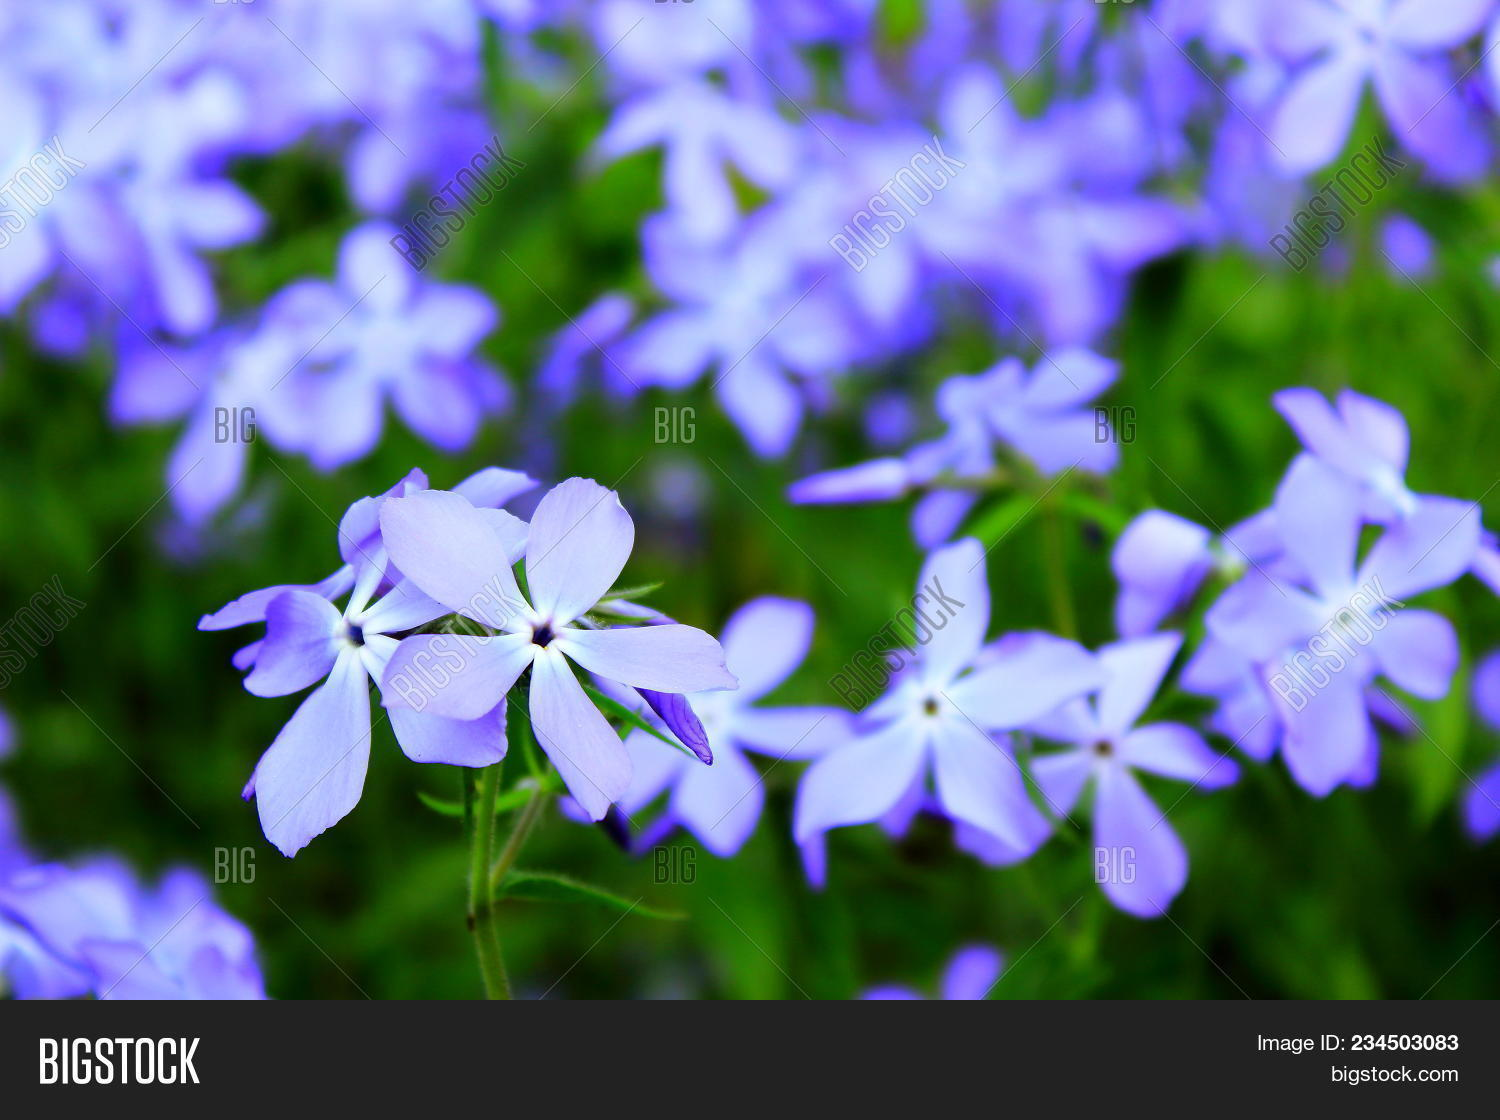 Spring Violet Lowers Image Photo Free Trial Bigstock